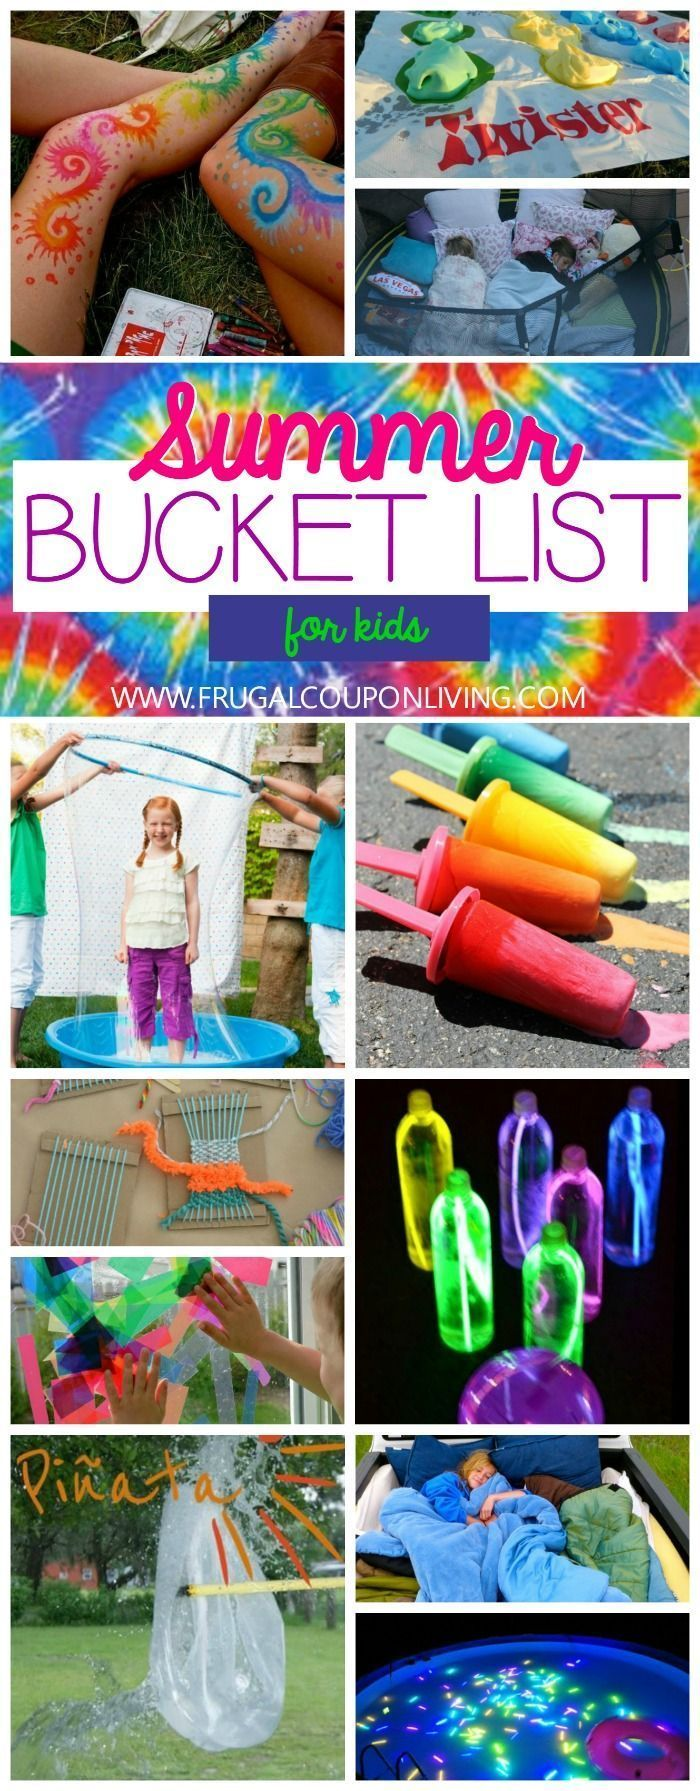 Visual Summer Bucket List for Kids on Frugal Coupon Living - Crafts, DIY, Activities and more.